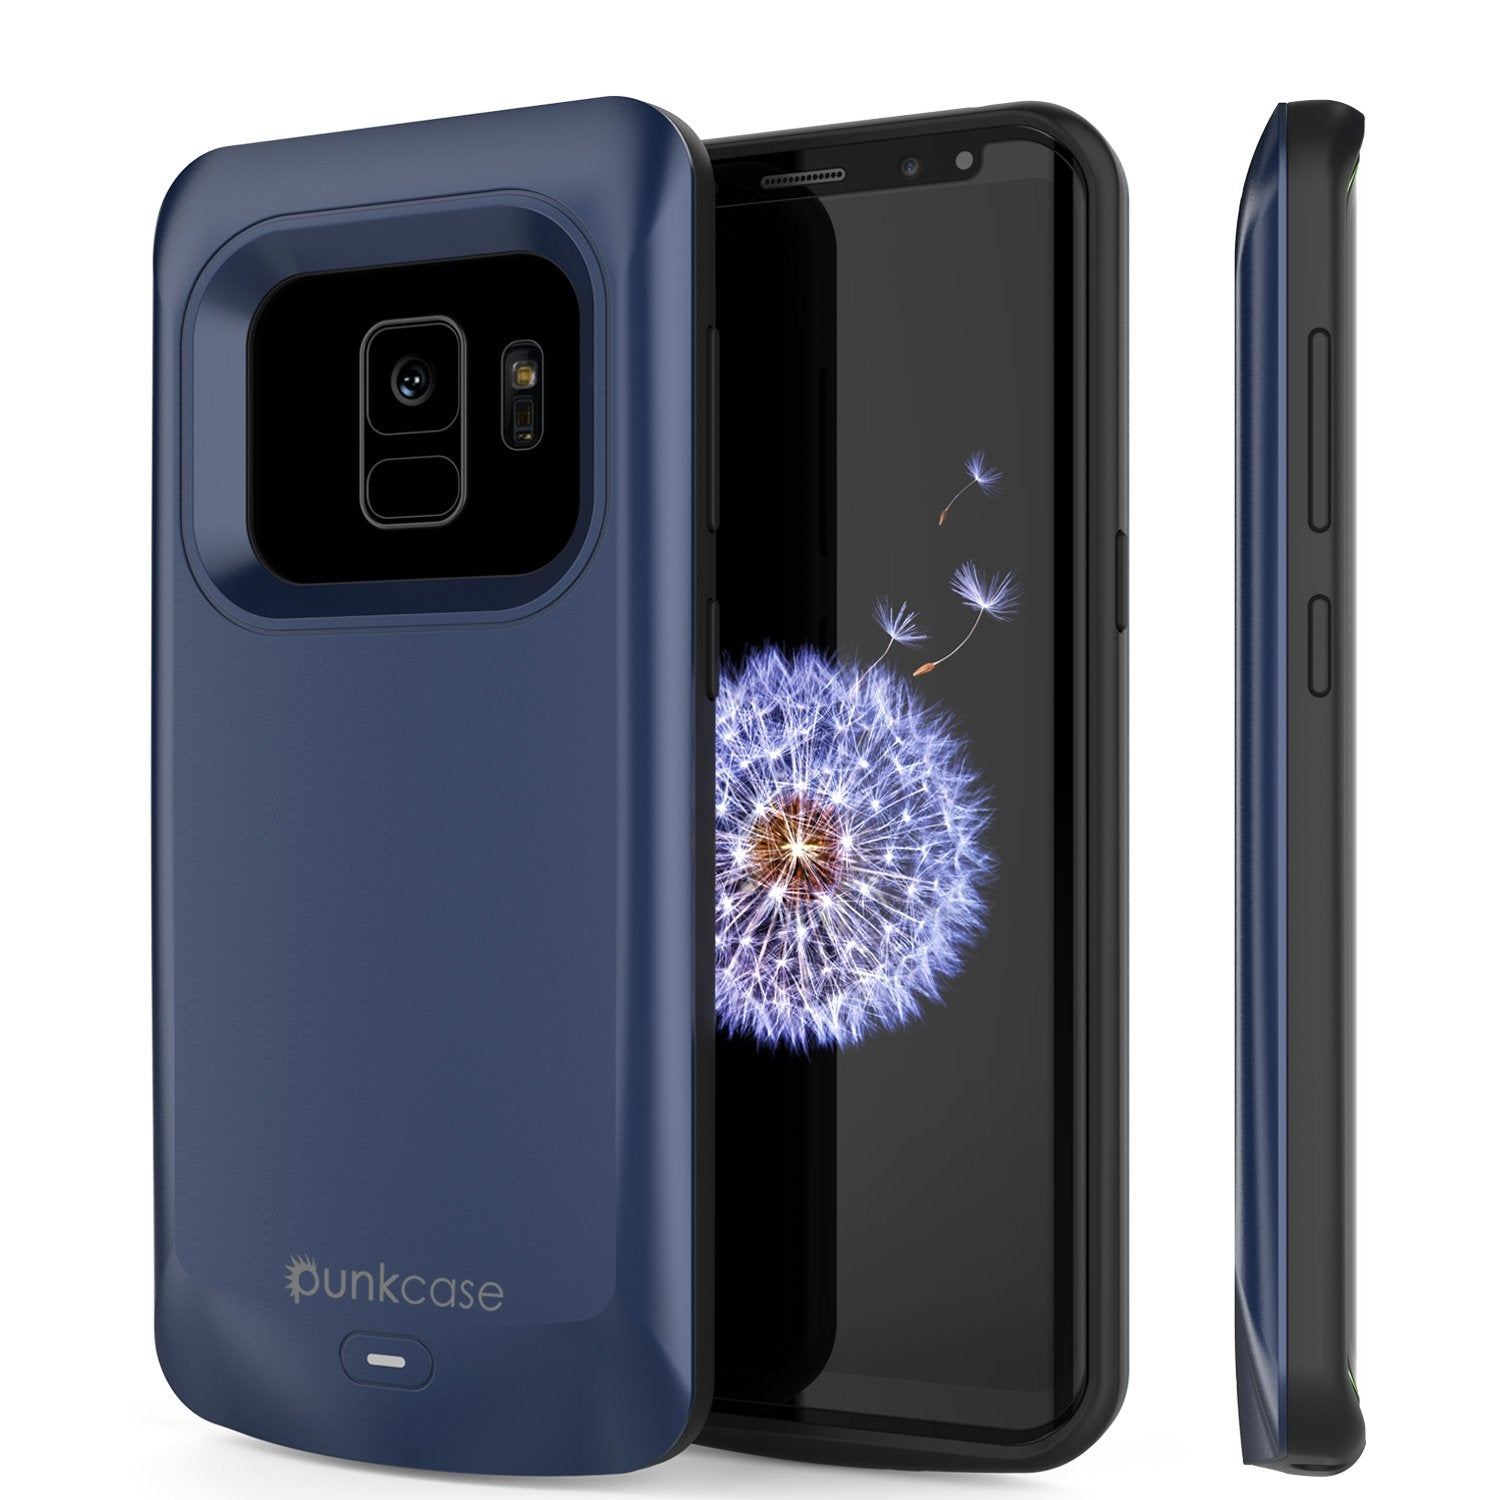 Galaxy S9 Case, PunkJuice 5000mAH Fast Charging Power Bank[Navy]